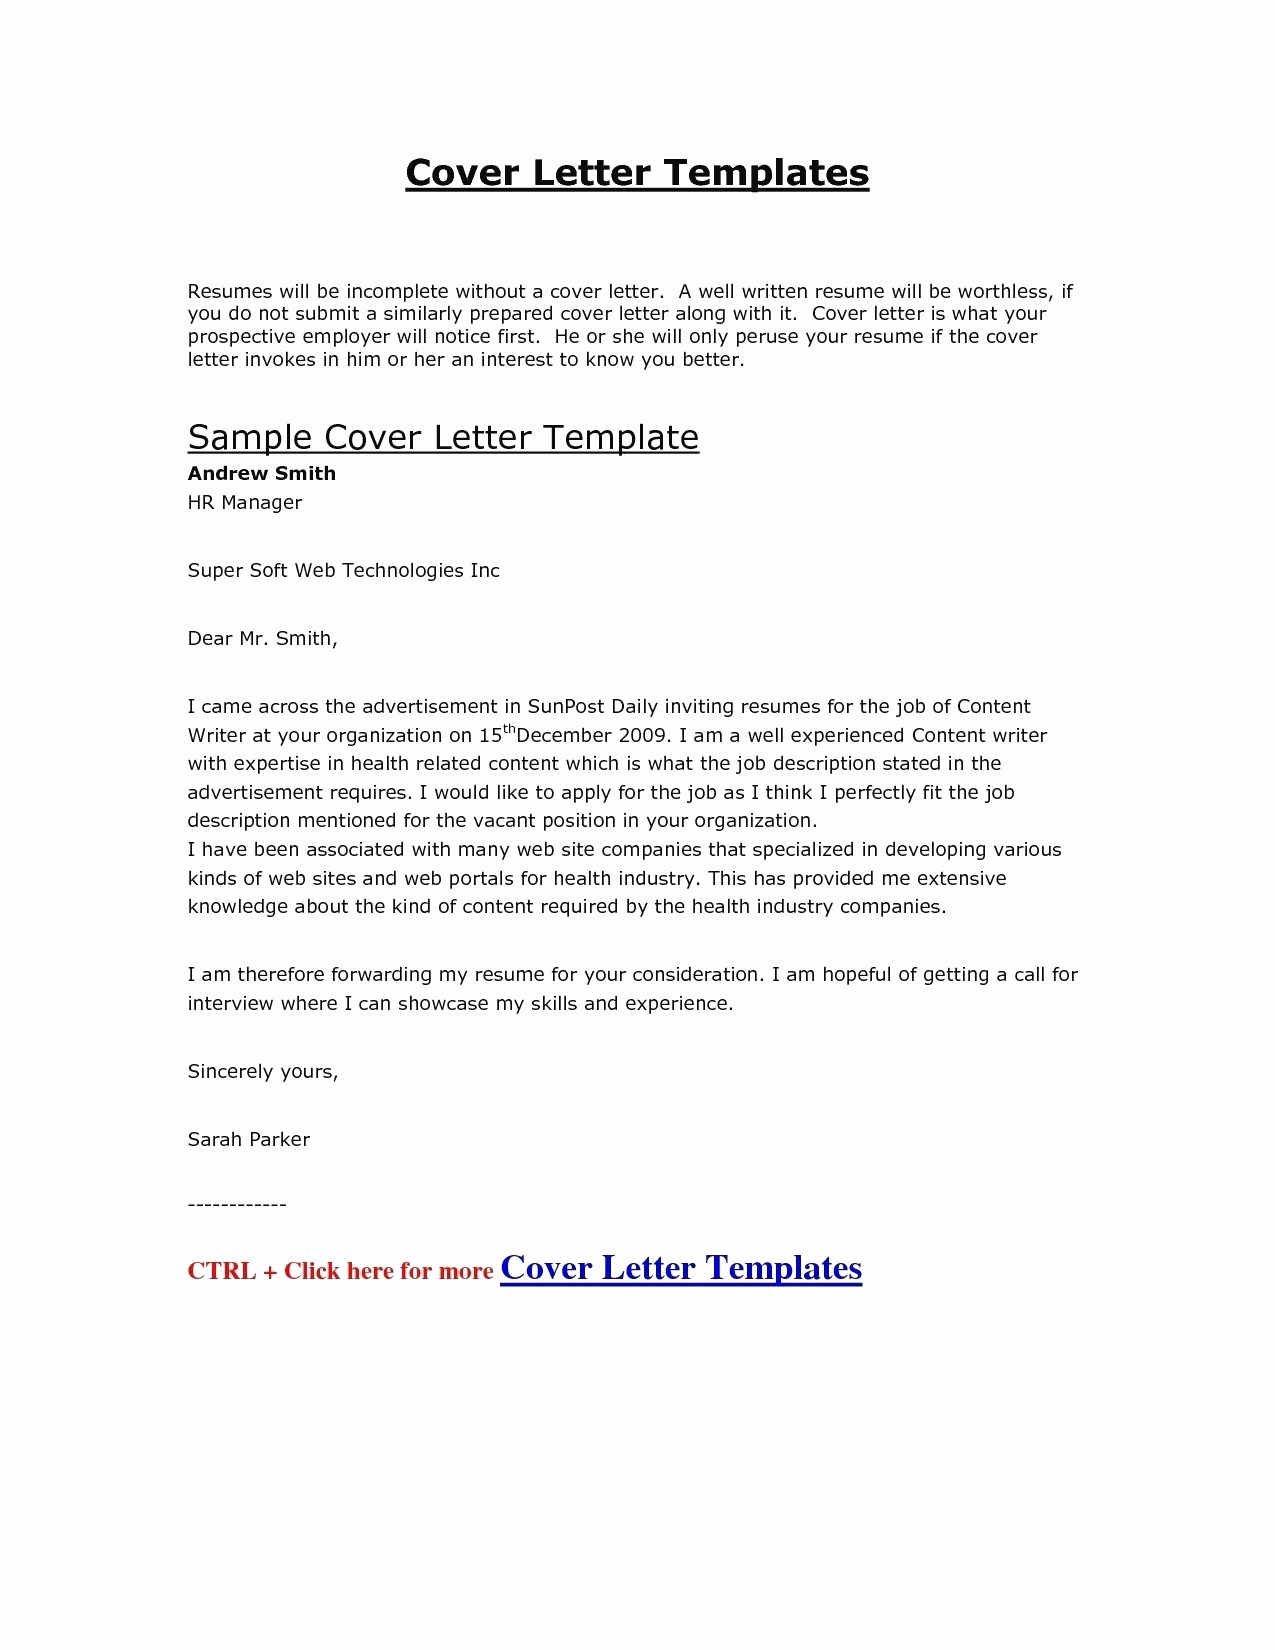 simple cover letter template Collection-Resume with Covering Letter Cover Letter Resume Template Luxury Resume Examples 0d Good Looking 5-k